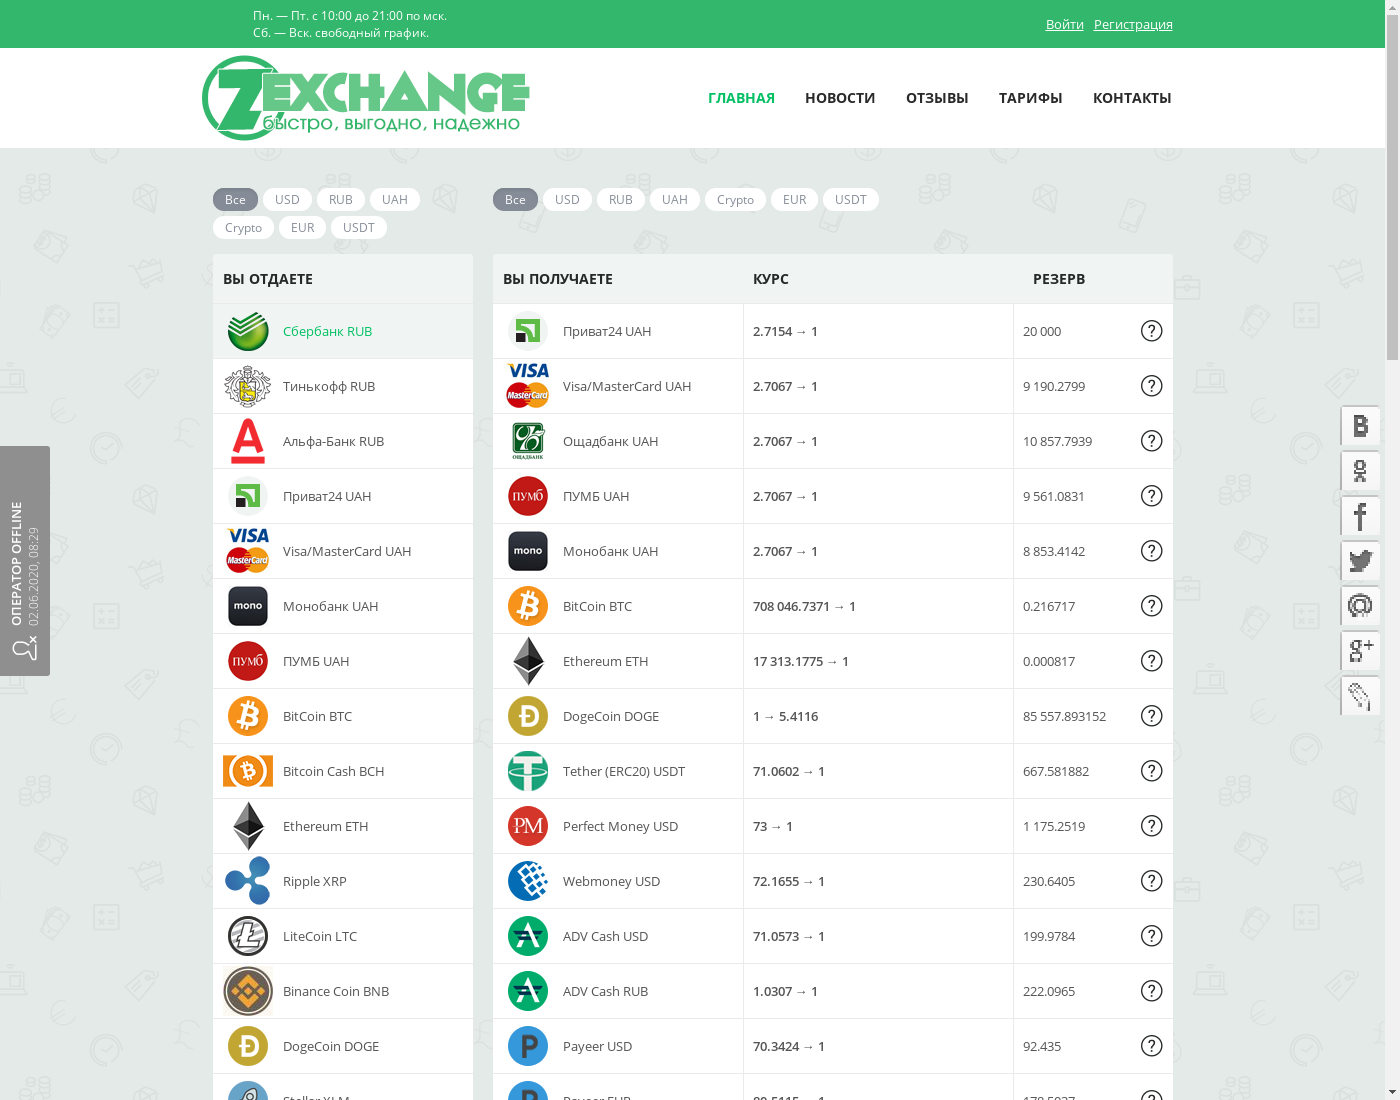 Z-exchange user interface: the home page in English